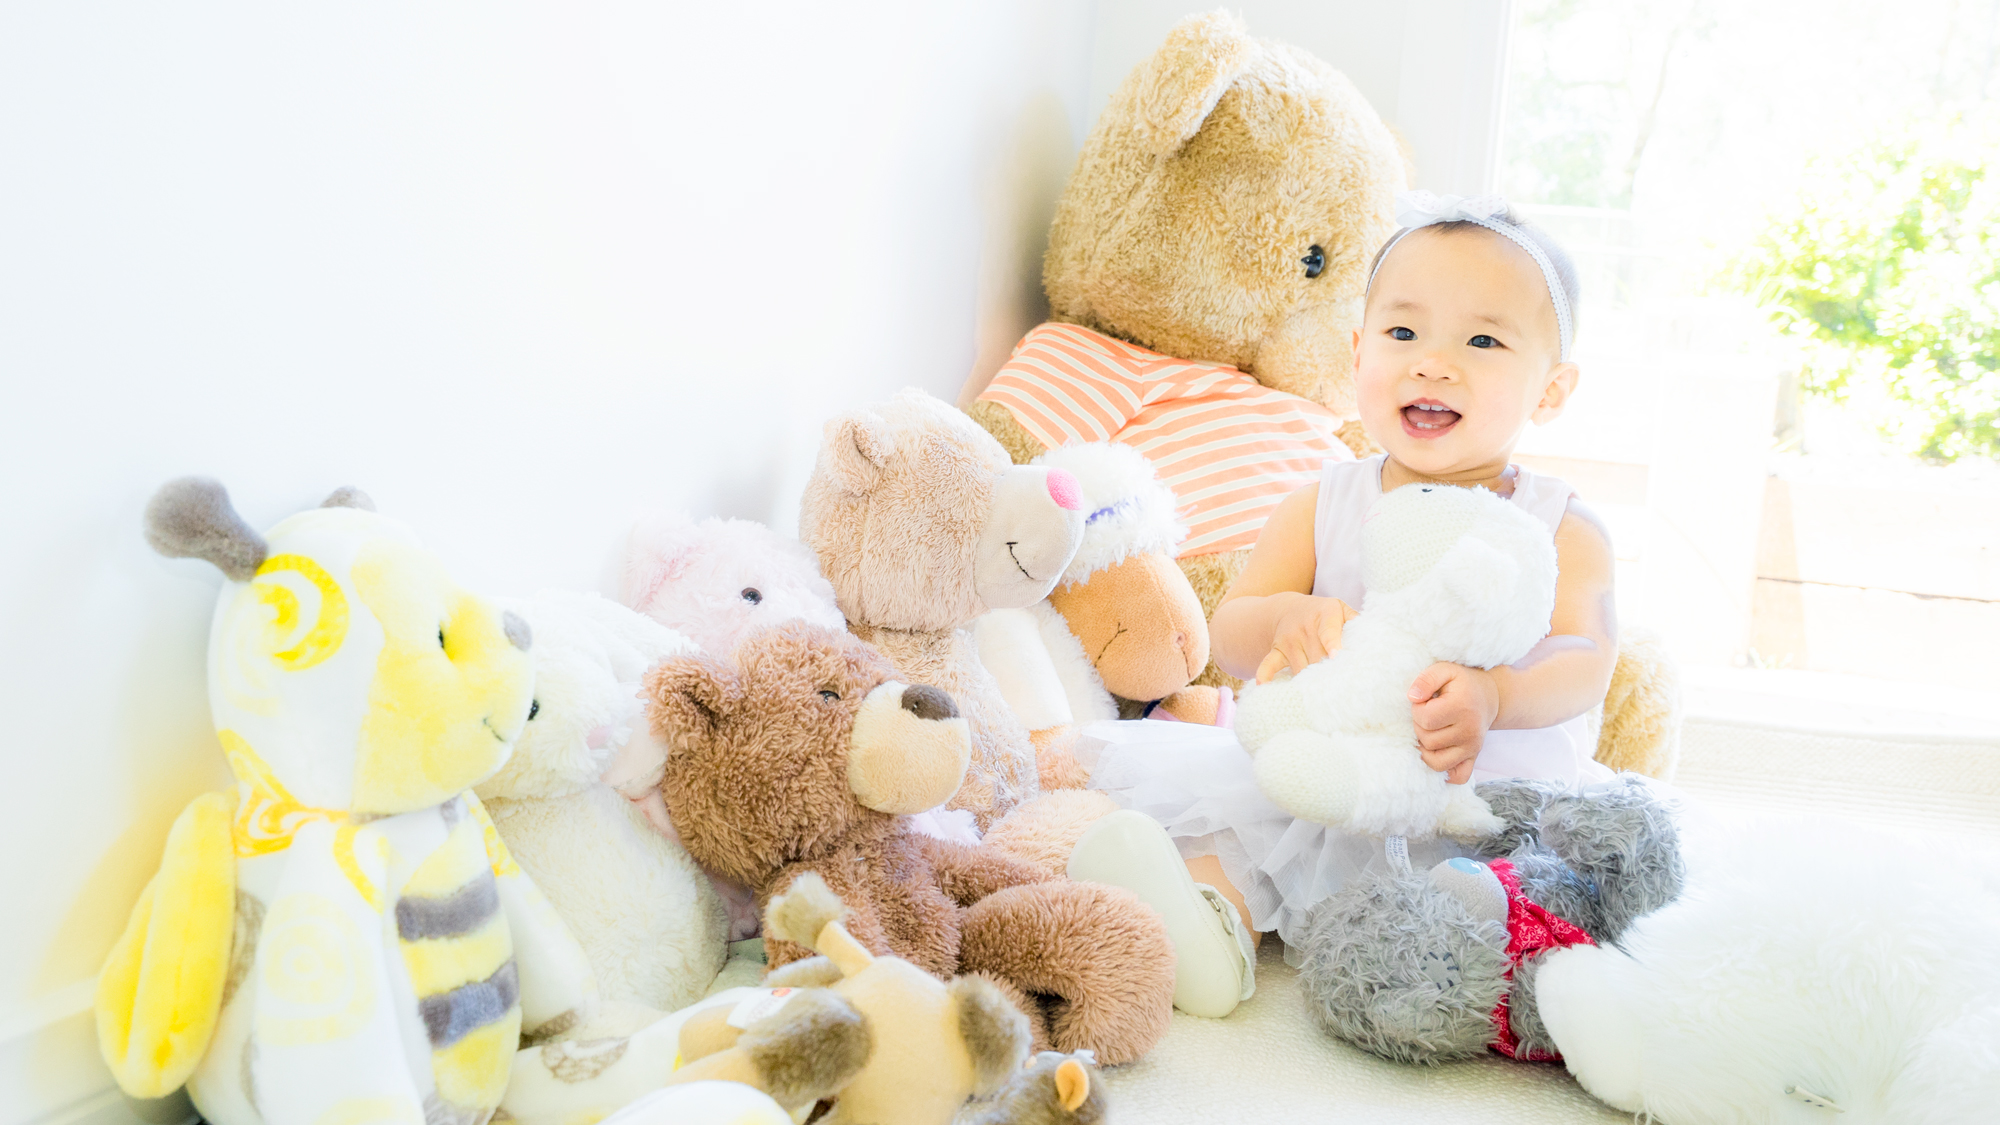 Asian baby portrait with plush toys by Black Avenue Productions